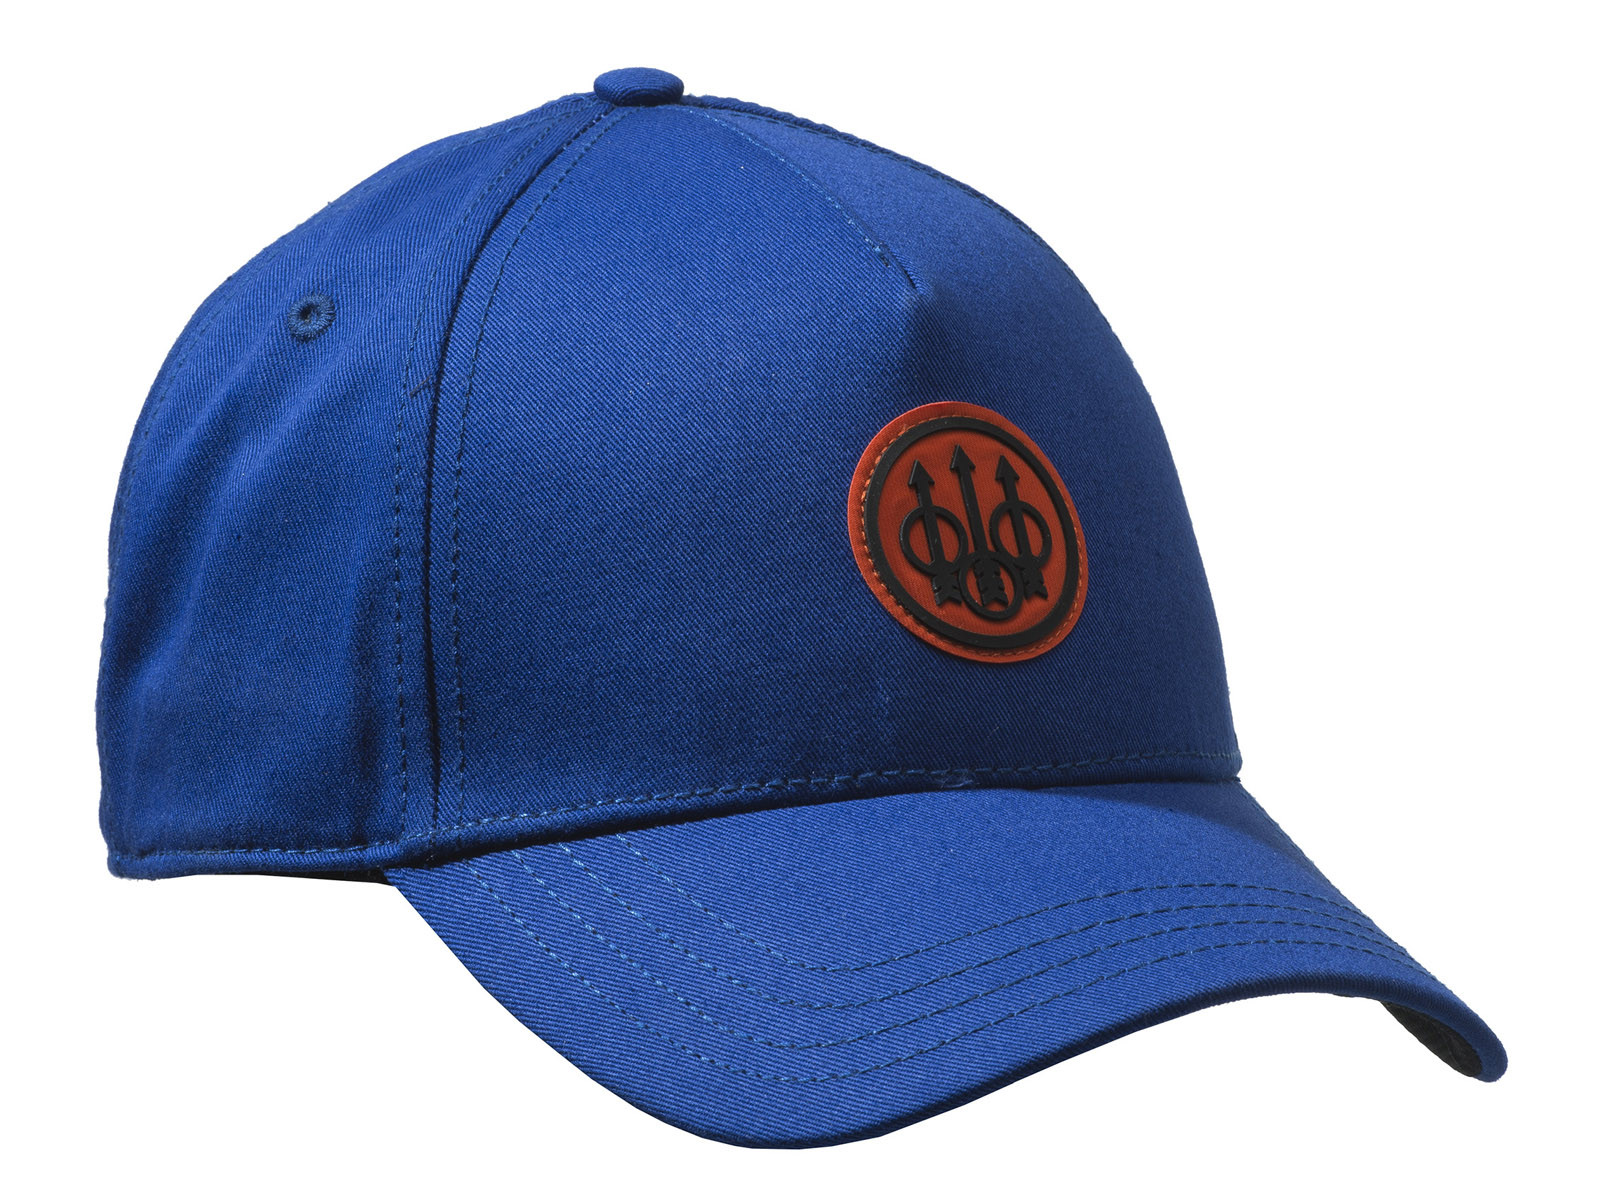 Beretta Patch Cap - Blue